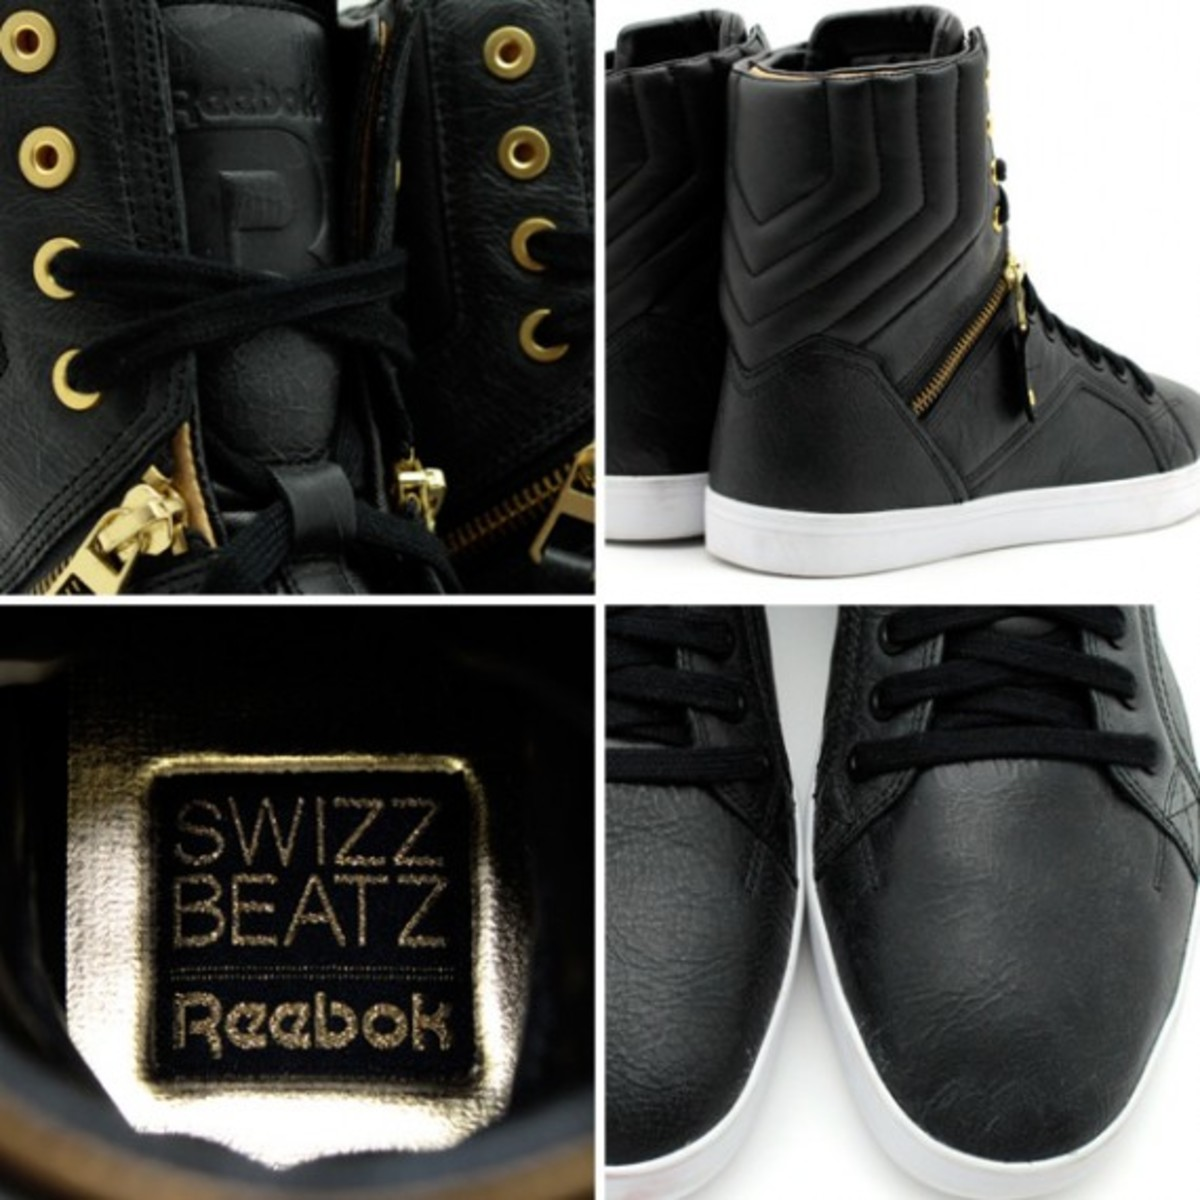 swizz-beatz-x-reebok-time-to-show-zip-boots-4